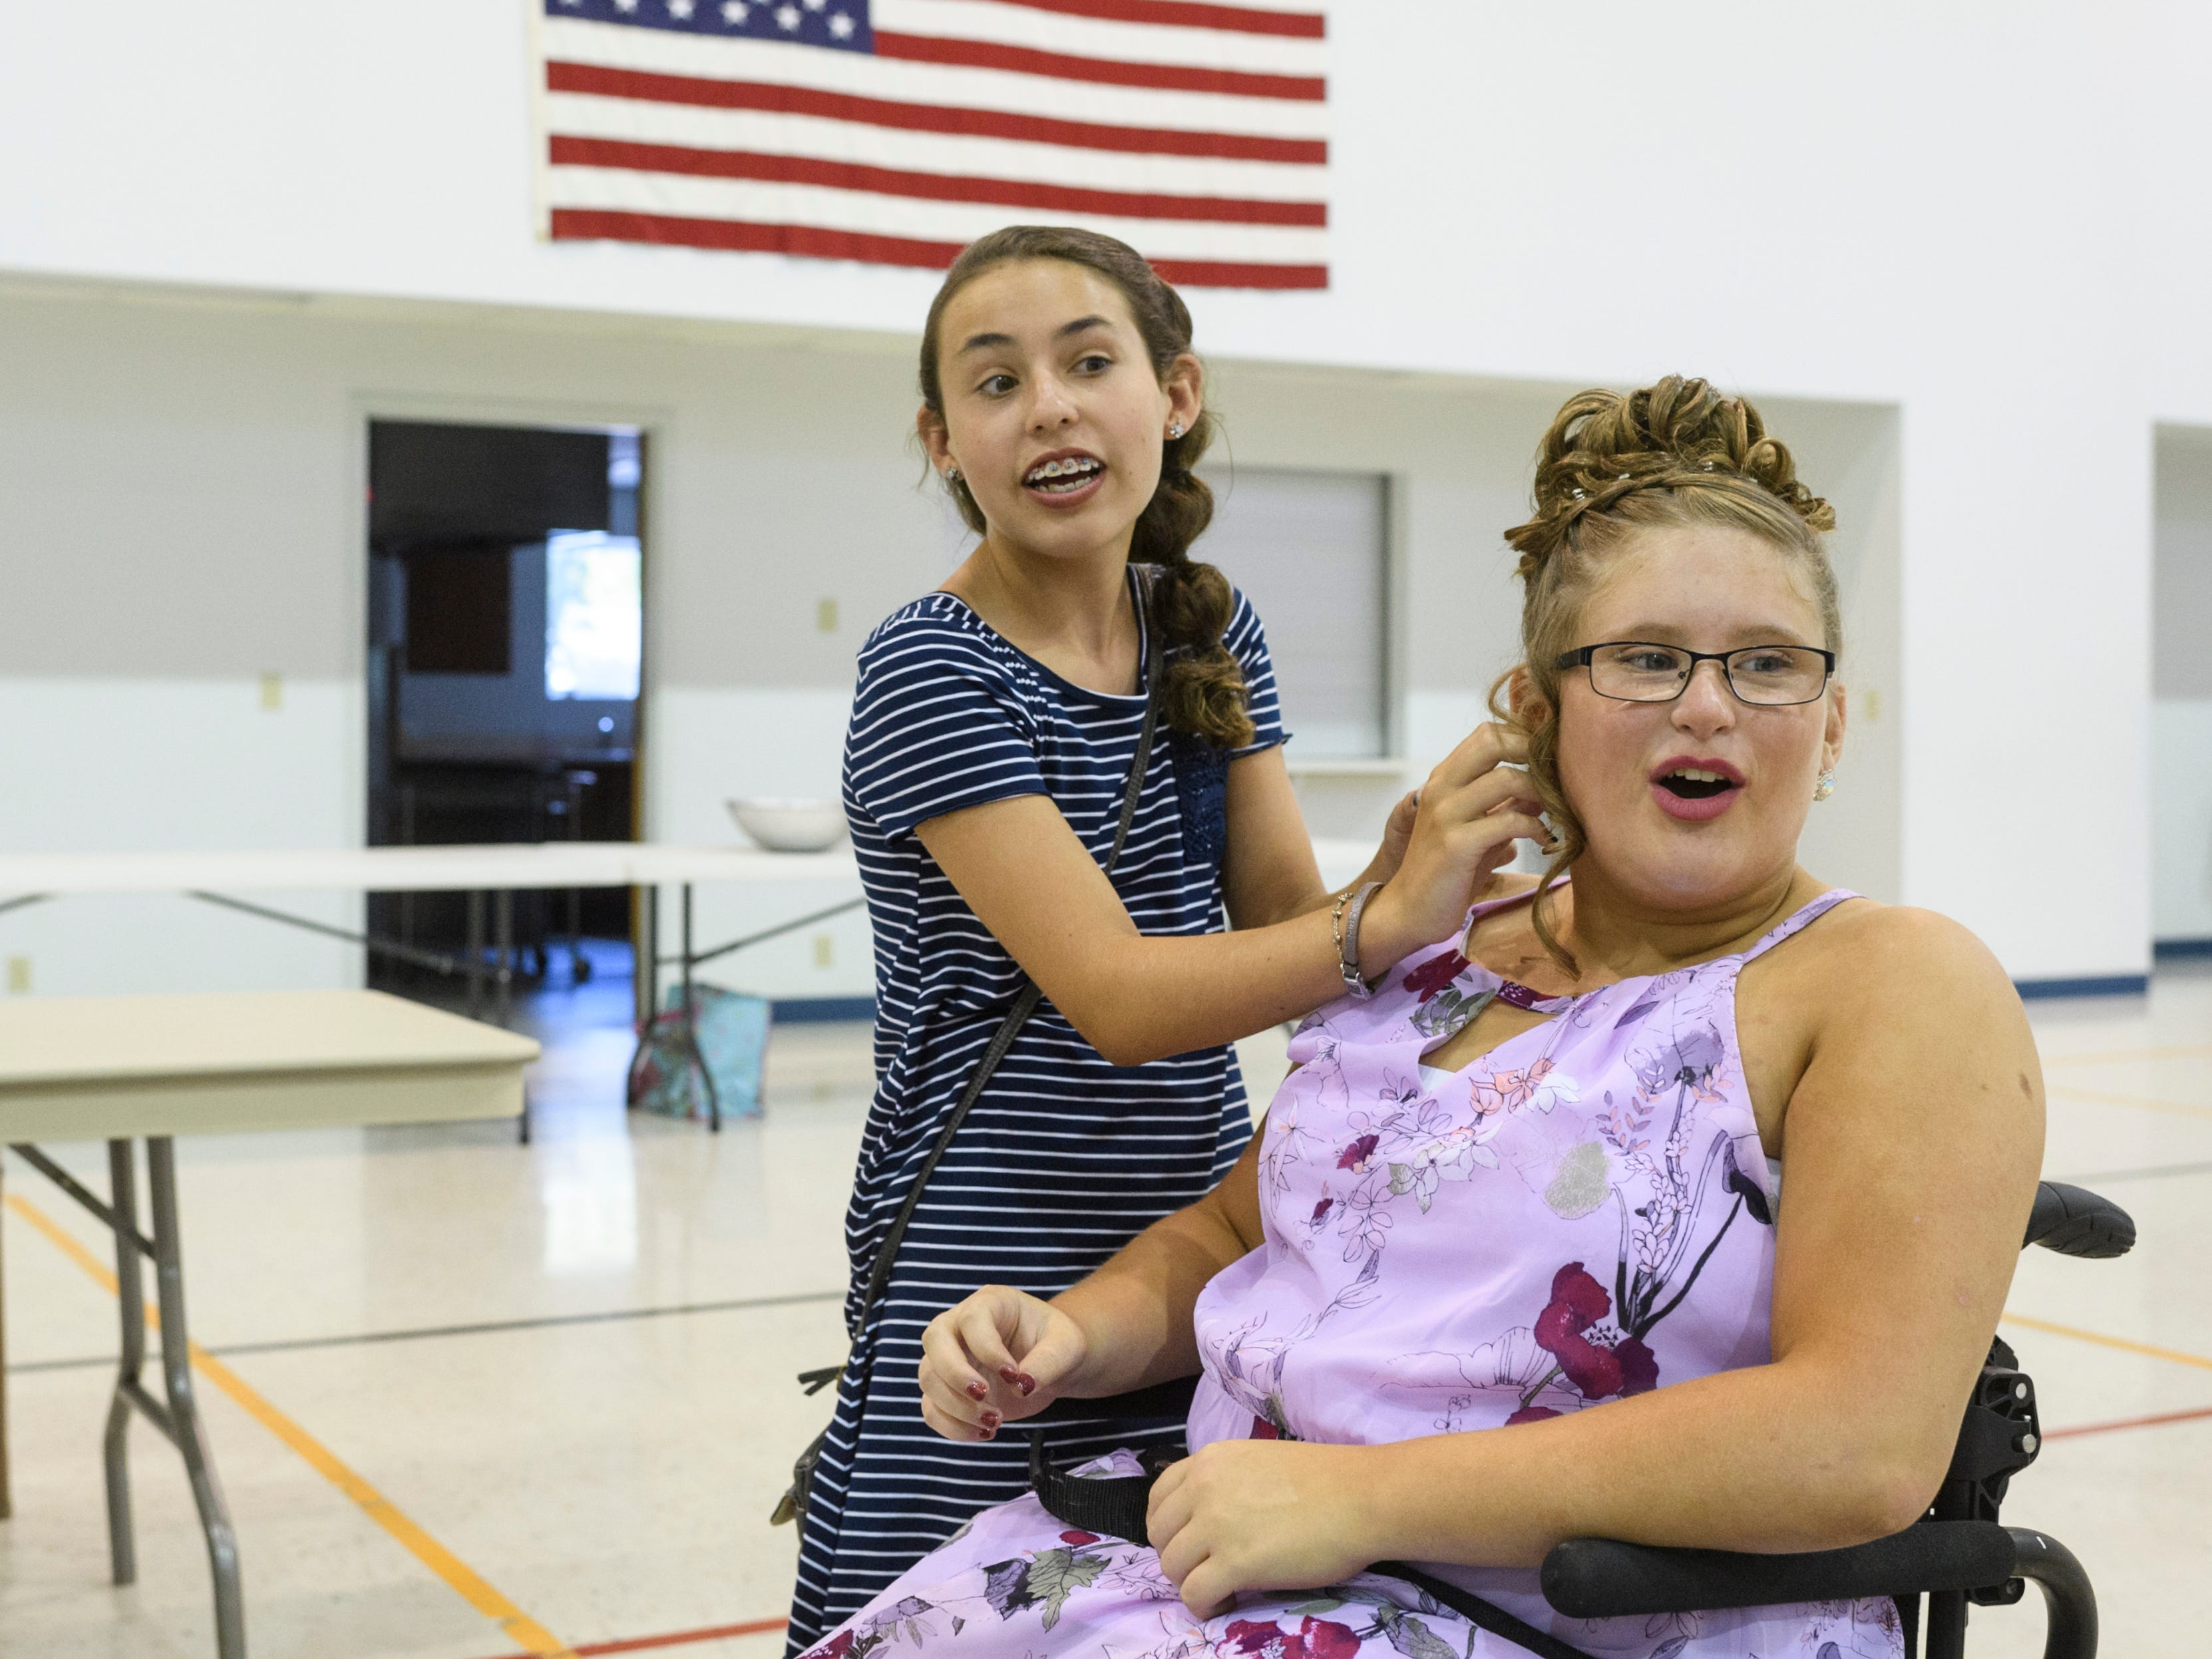 Macie Leeds, 13, helps take off Ali Shanks's interview jewelry as they wait for other contestants to finish their interviews with the pageant judges at the Salem Church of Darmstadt, Saturday afternoon, July 28, 2018. Leeds, who has been friends with Shanks since kindergarten, spent the afternoon helping Shanks prepare for the pageant.